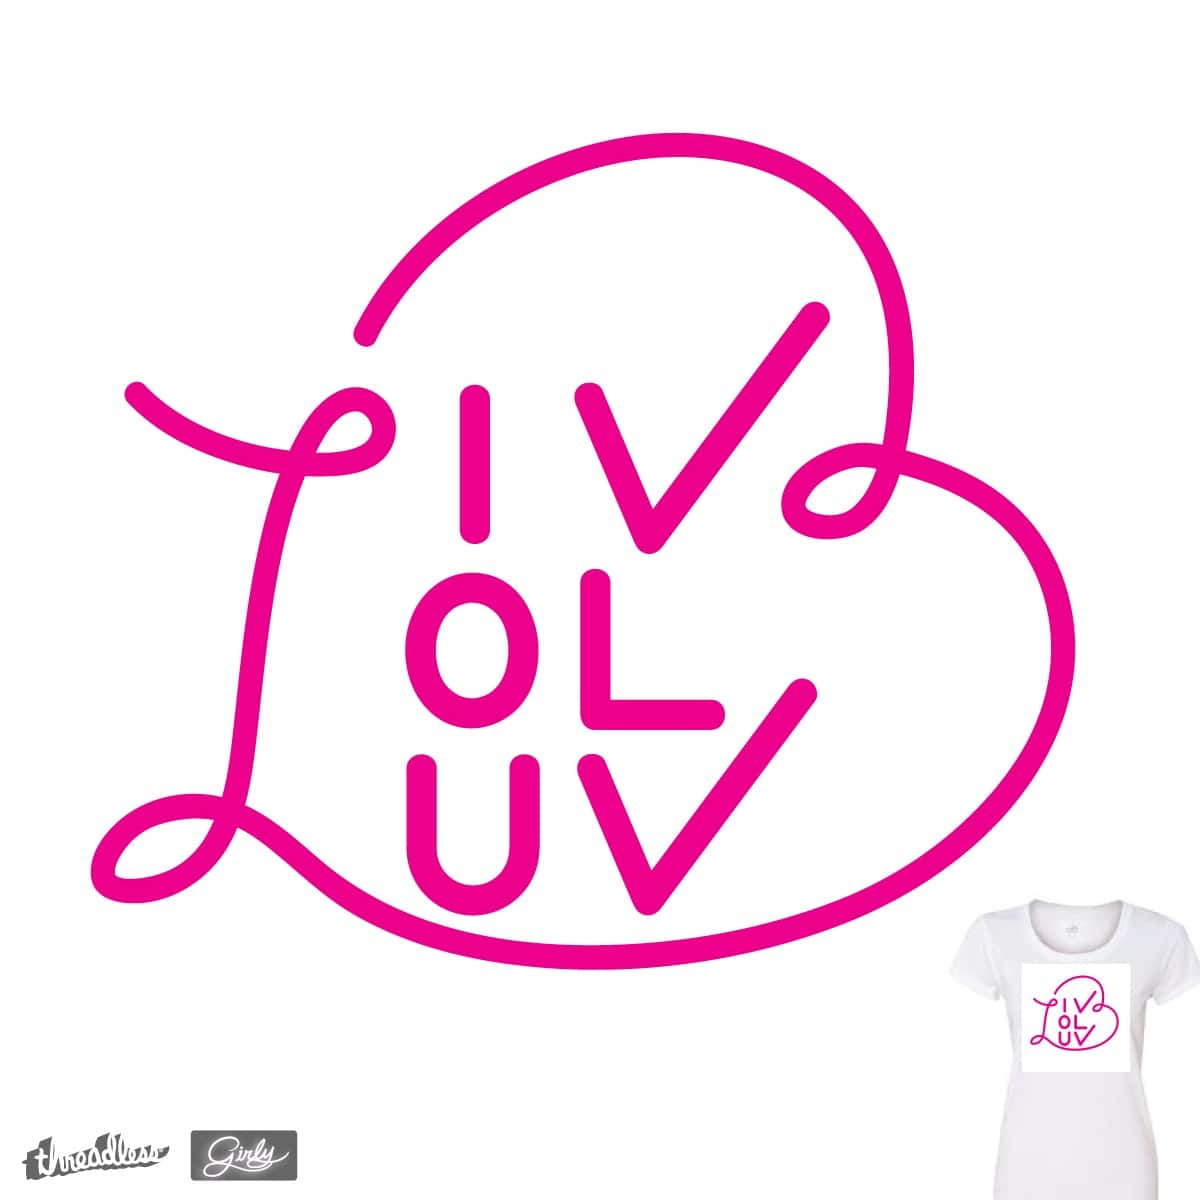 <3Scribble by F_A_D on Threadless